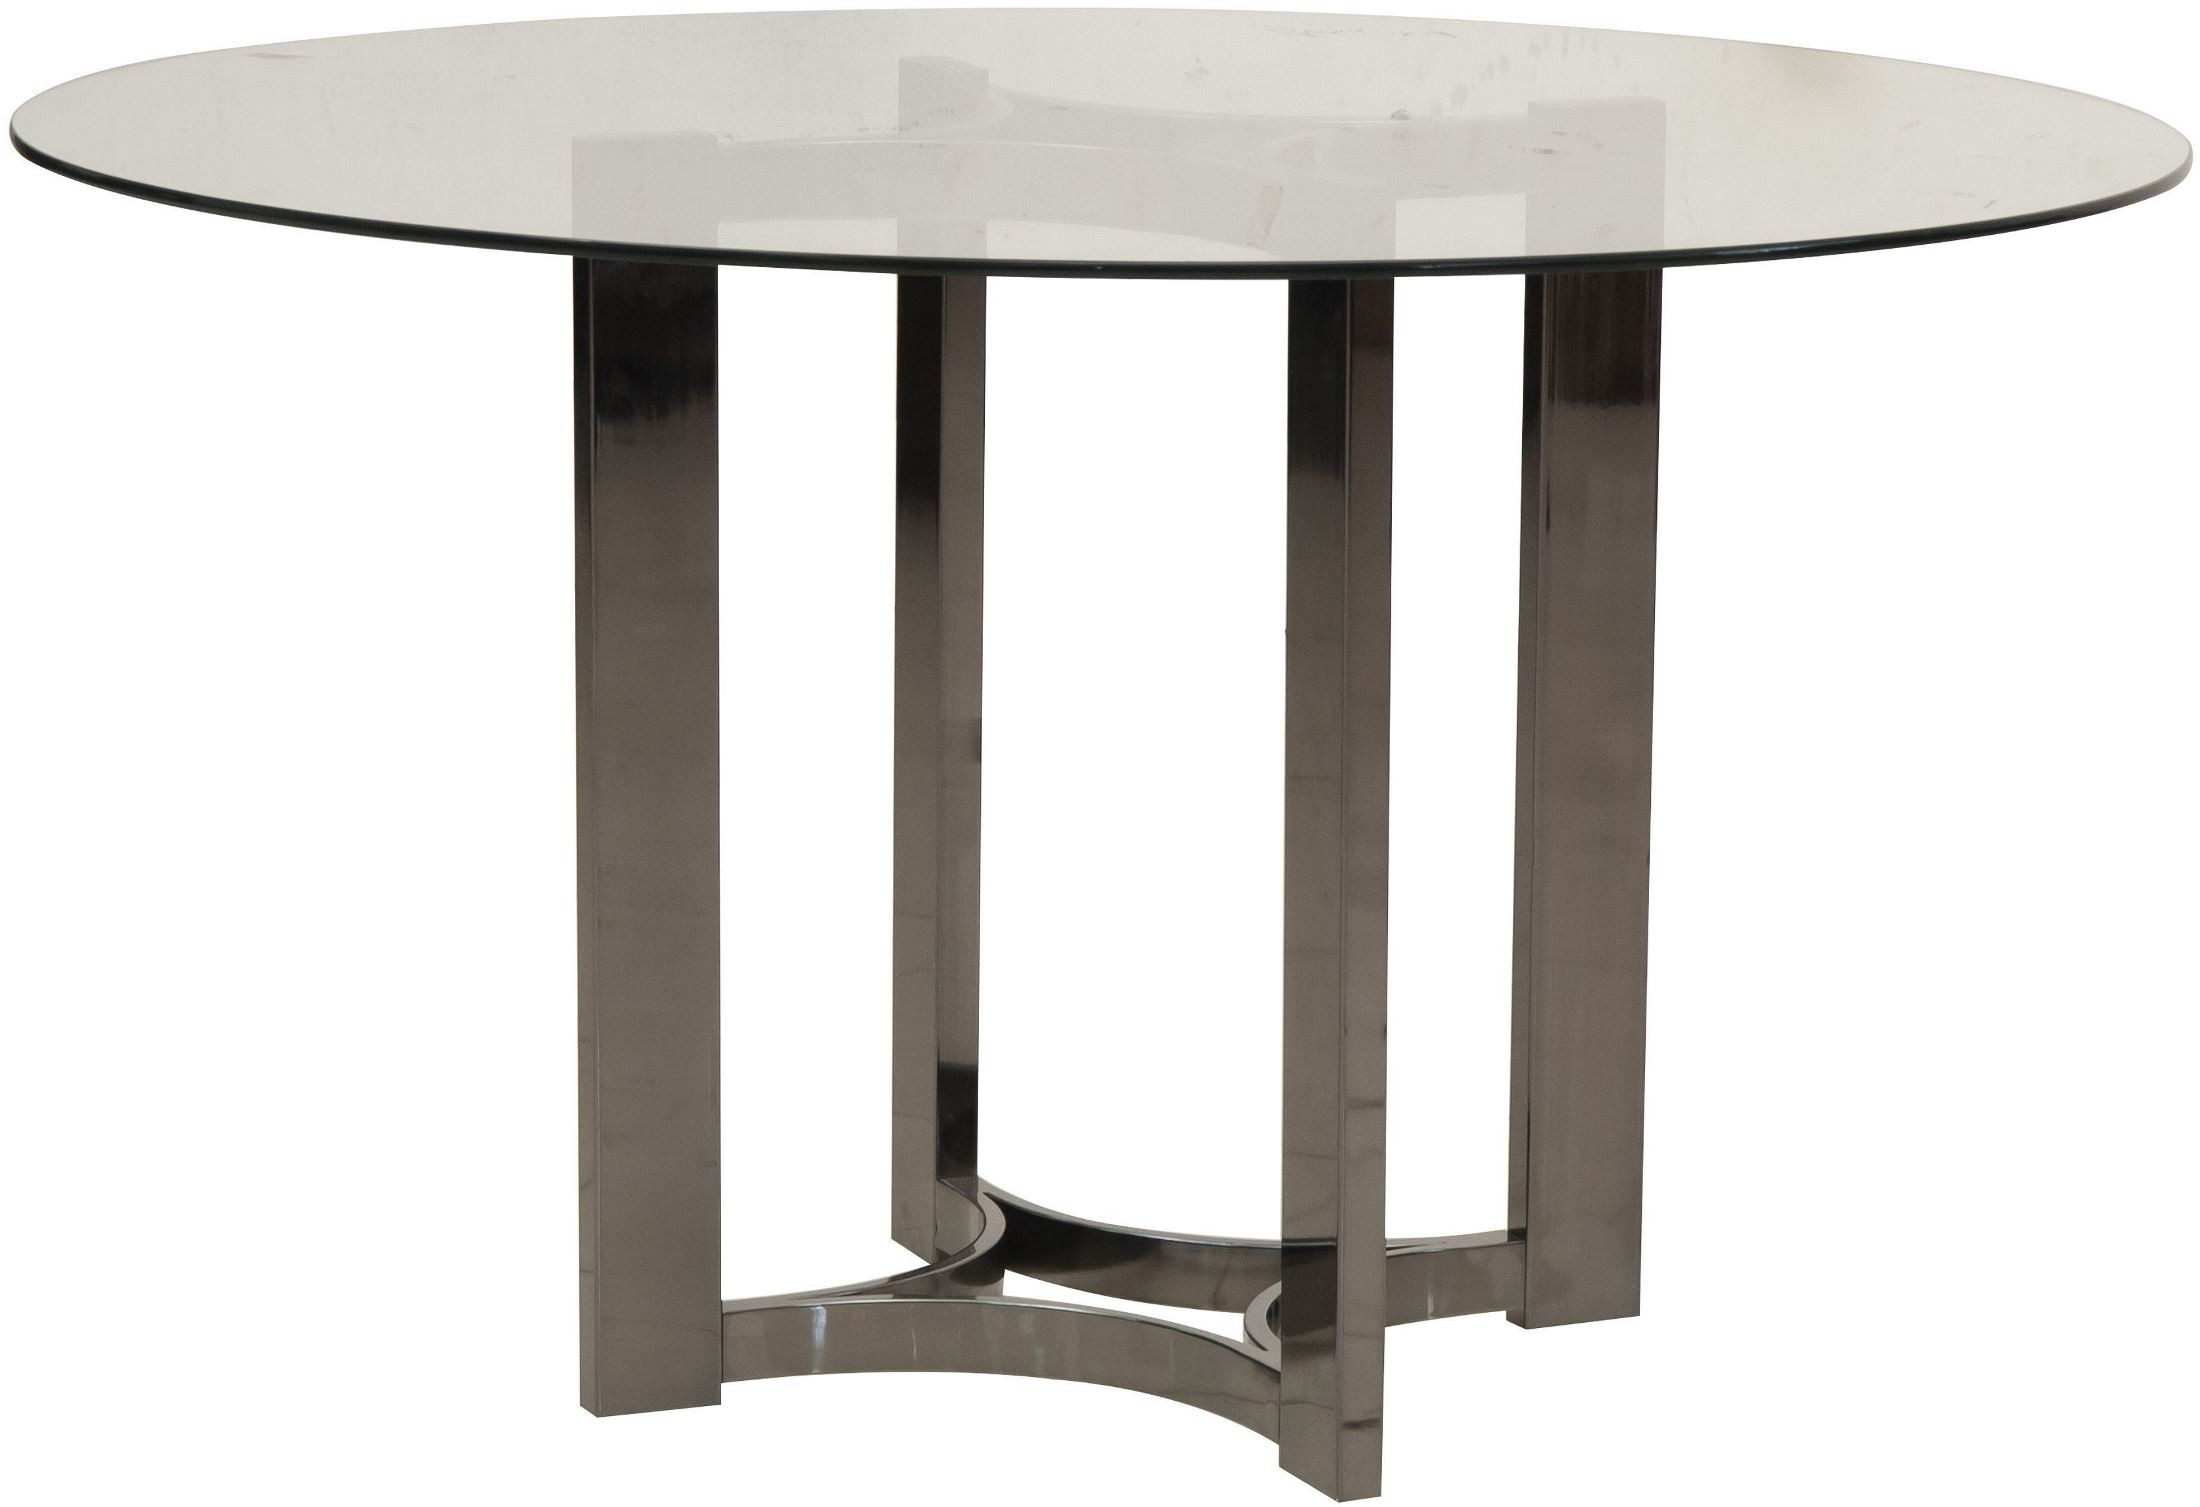 Silverton sounds black round dining table p004230 31 pulaski for Black round dining table